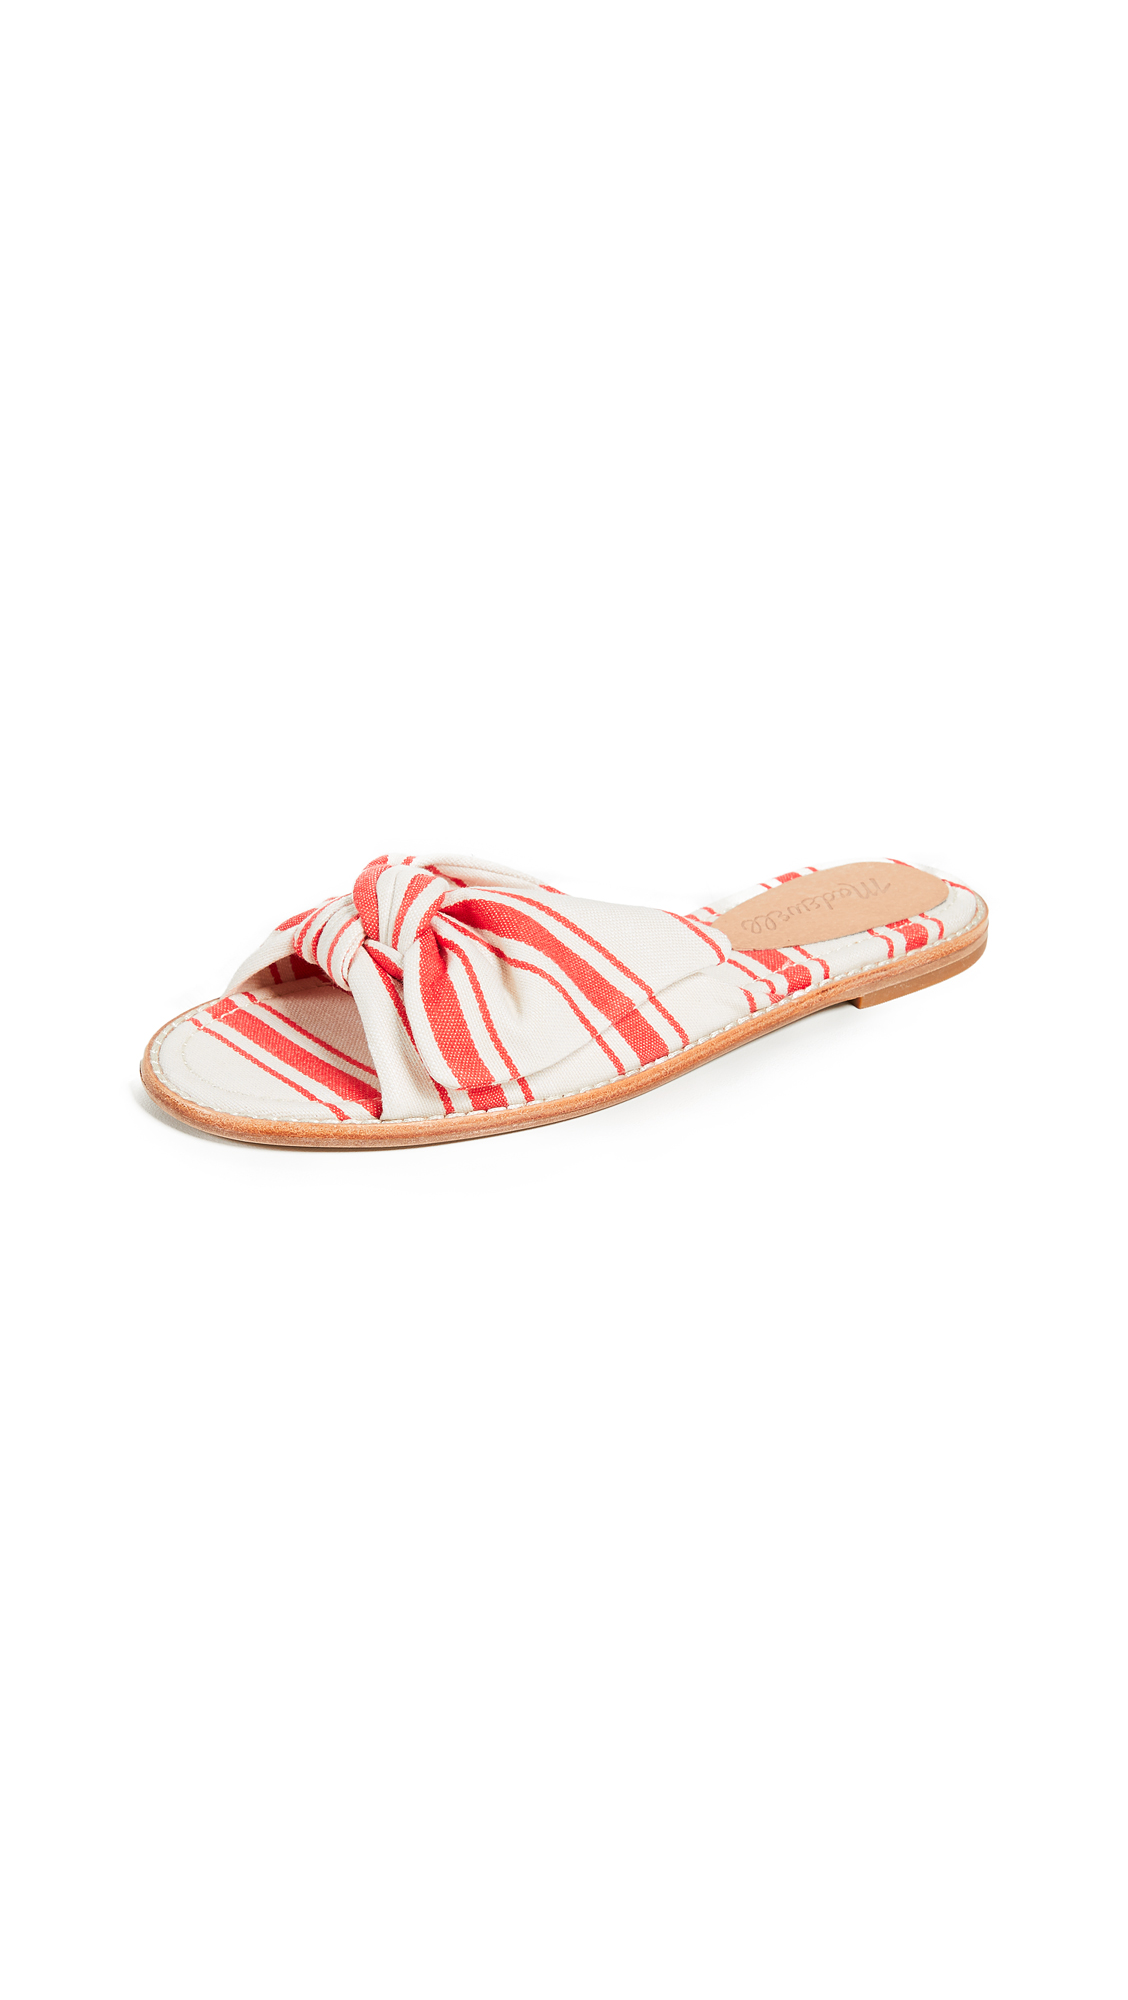 Madewell The Naida Half Bow Sandals - Muslin Creamsicle Stripe